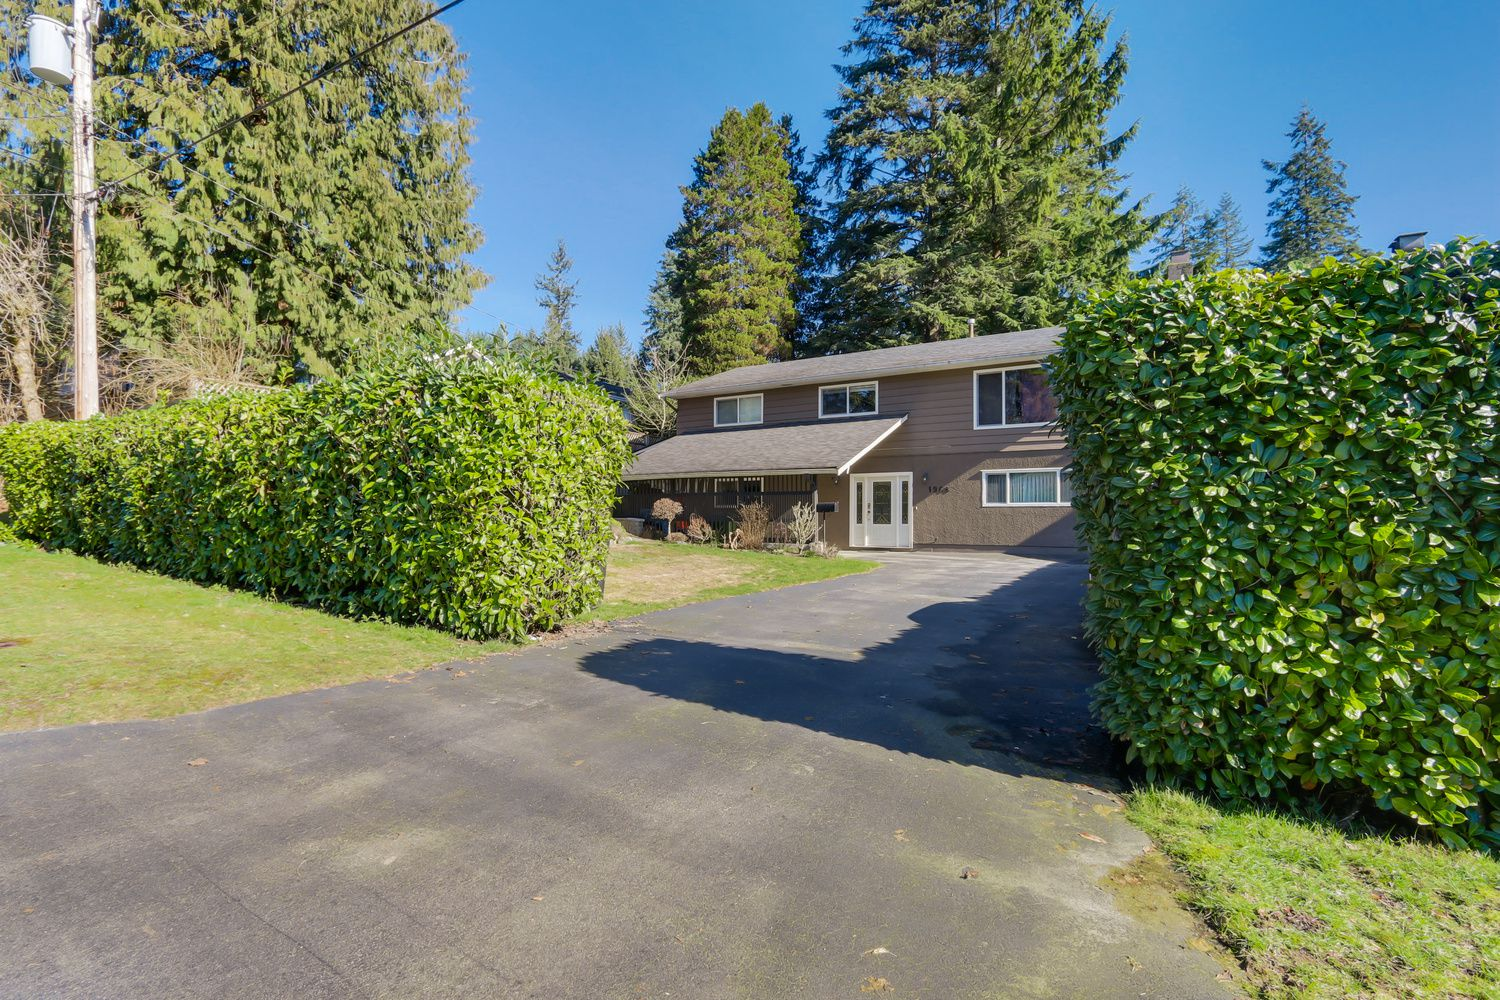 Main Photo: 1968 Whitman Ave. in North Vancouver: House for sale : MLS®# R2038512